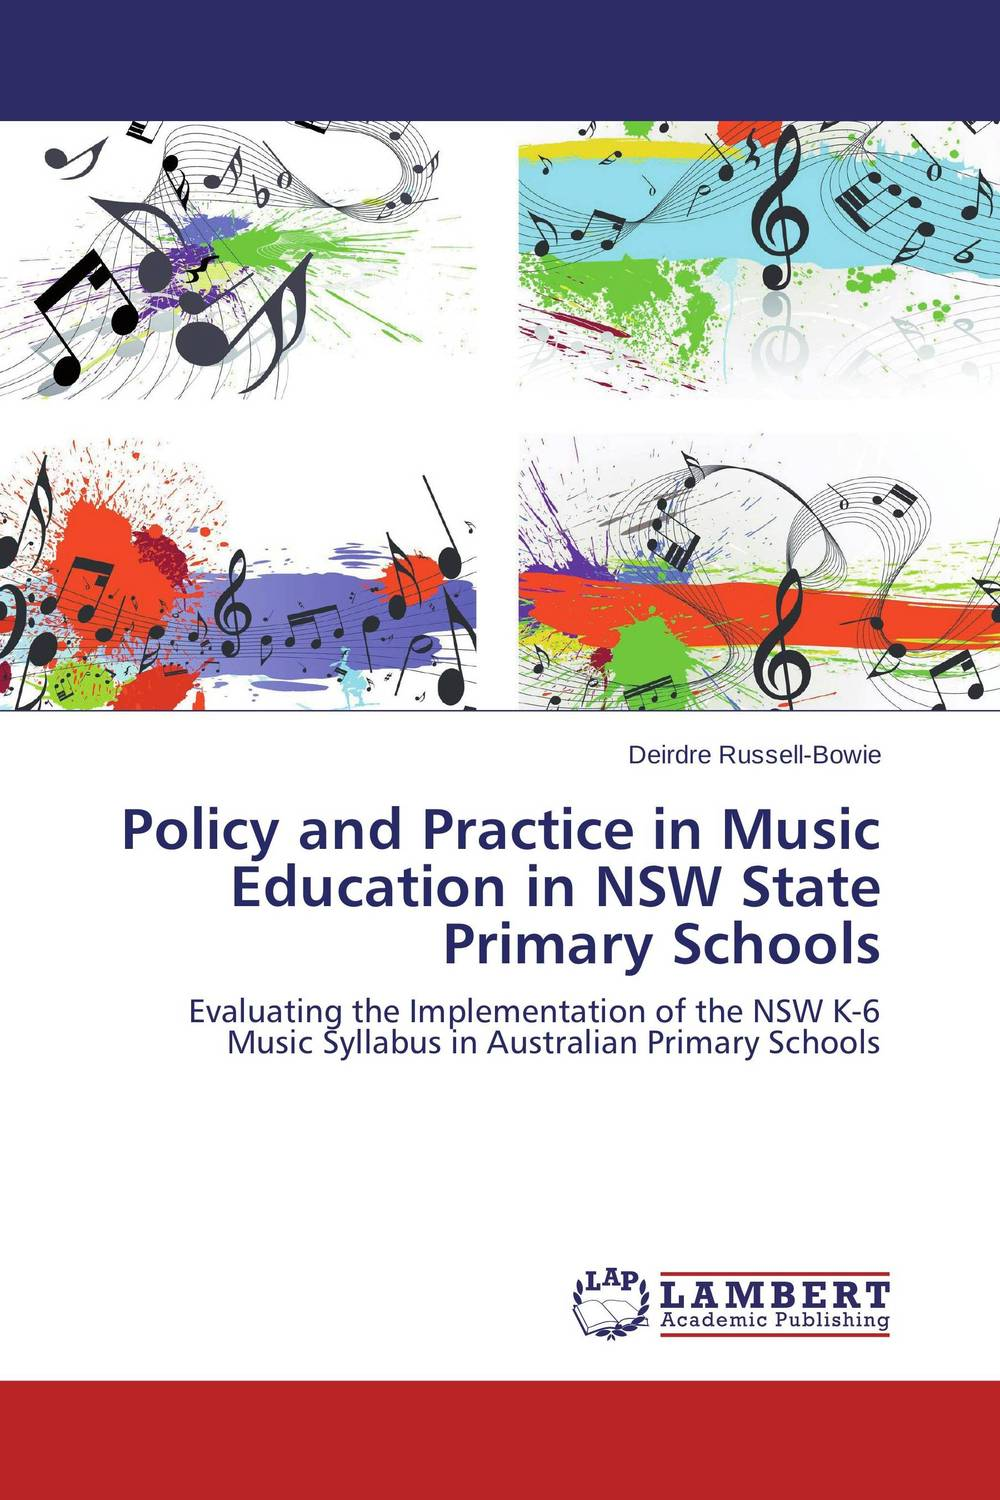 Policy and Practice in Music Education in NSW State Primary Schools spirituals and gospel music performance practice